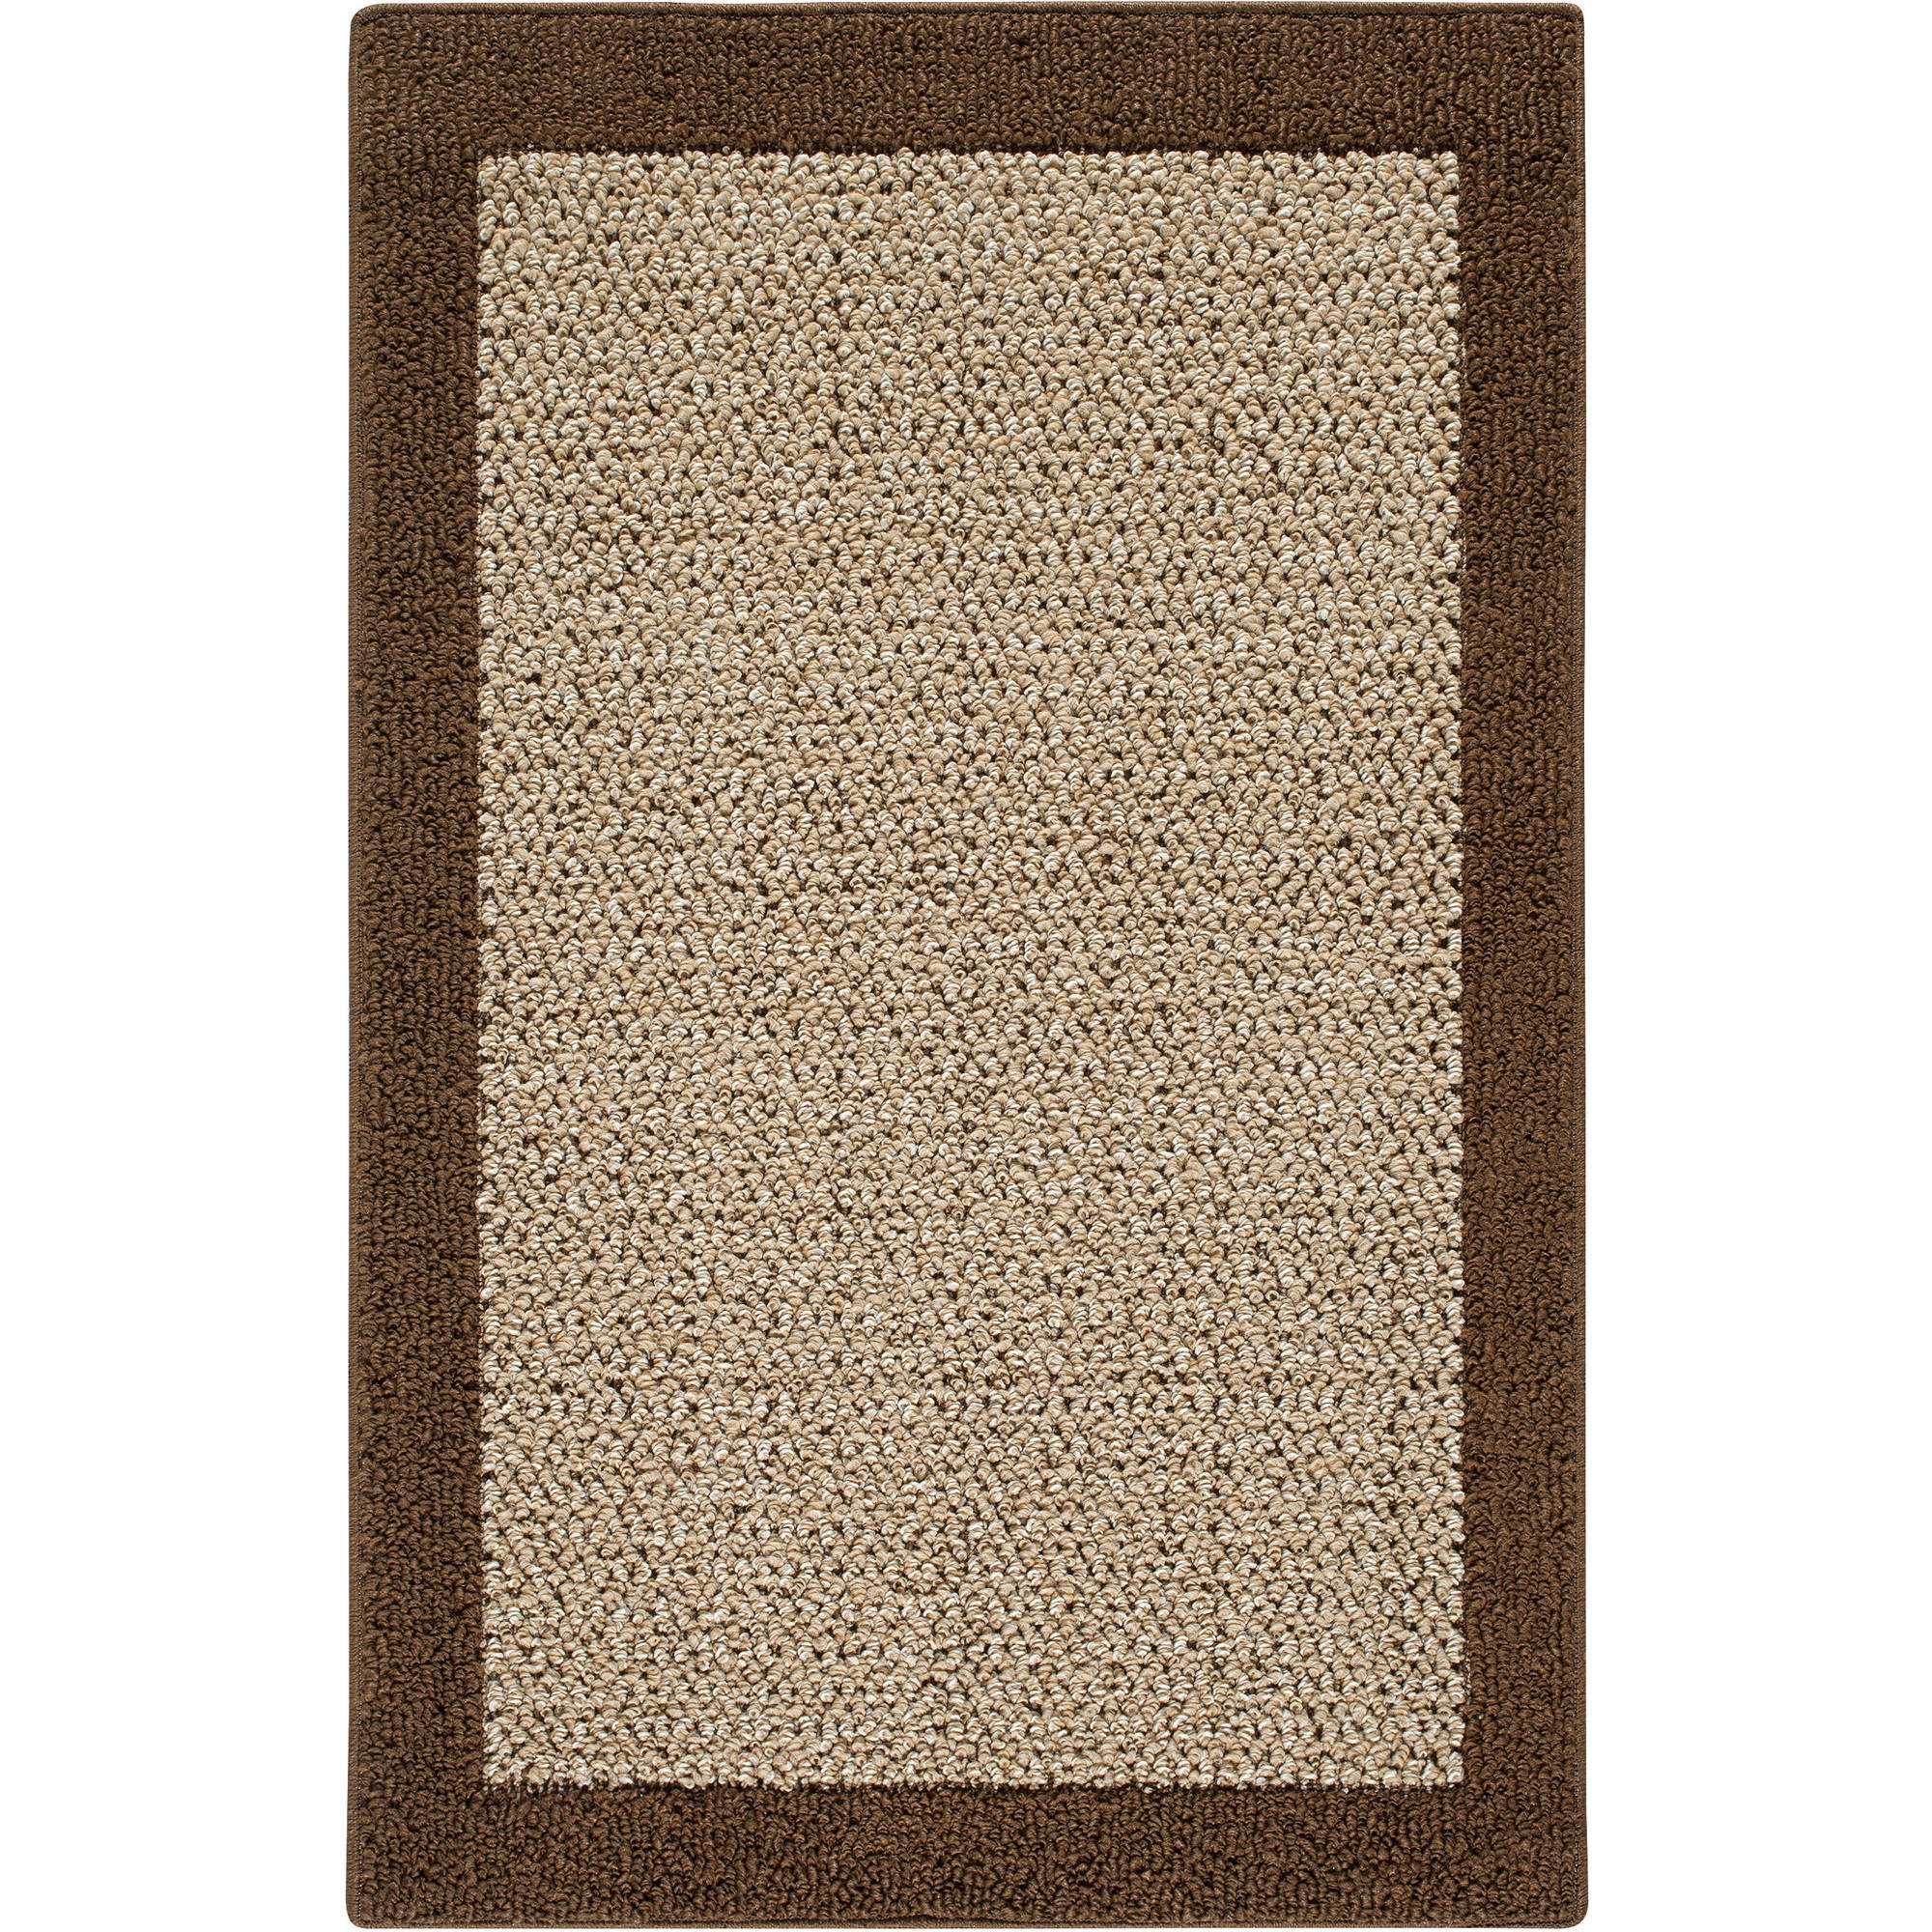 Benefits of using sisal rugs